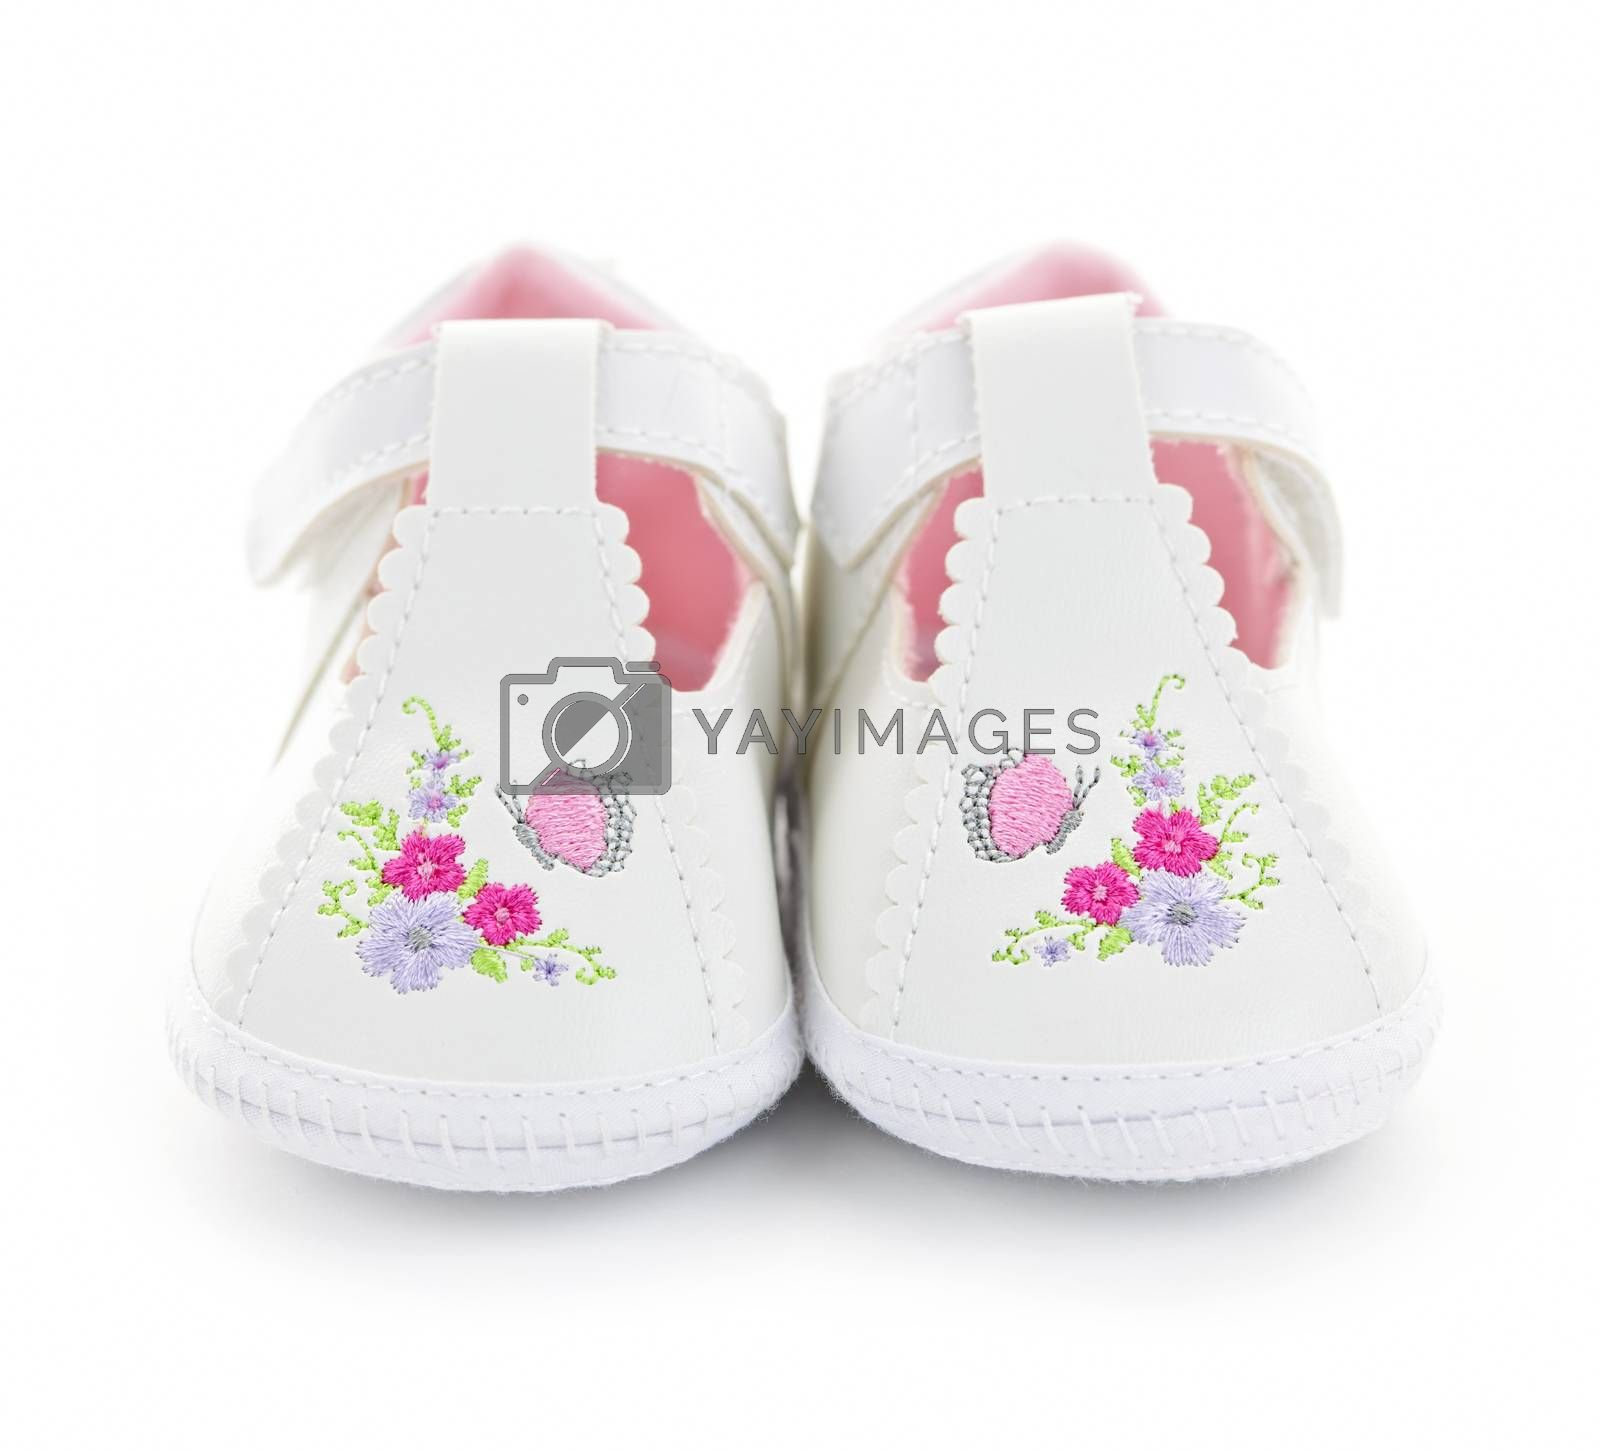 Closeup of girl baby shoes isolated on white background